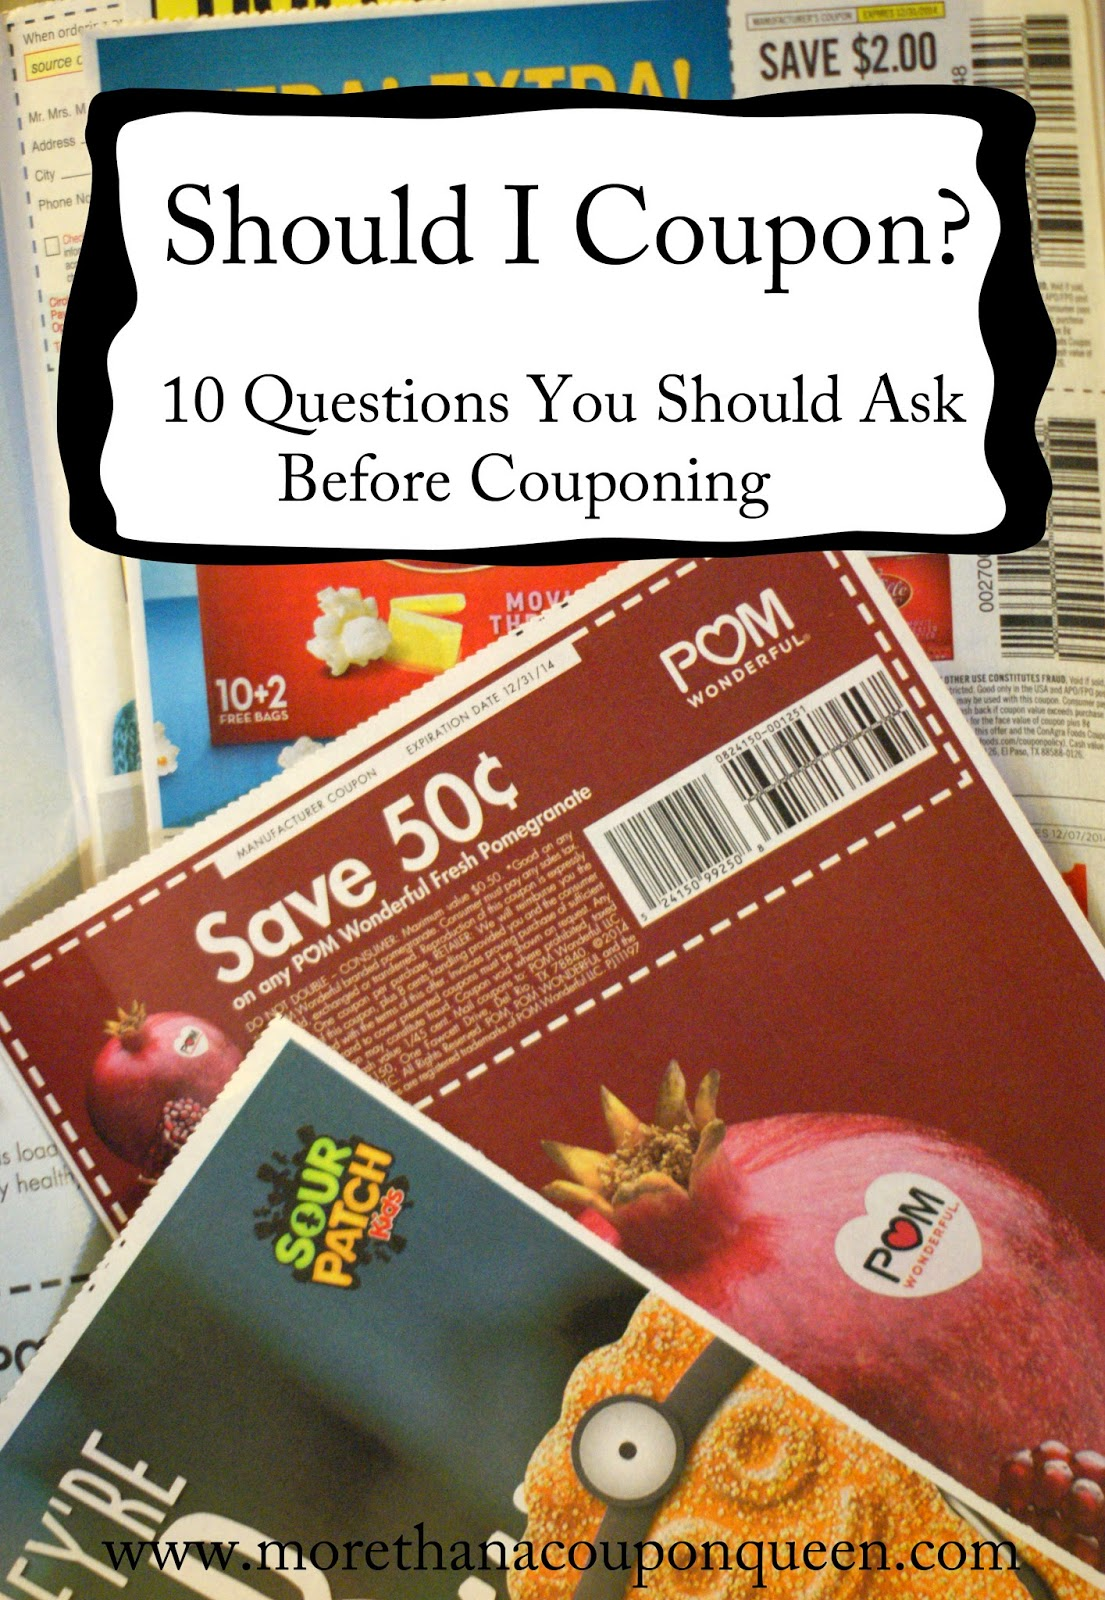 Should I coupon? 10 Questions You Should Ask Before Couponing